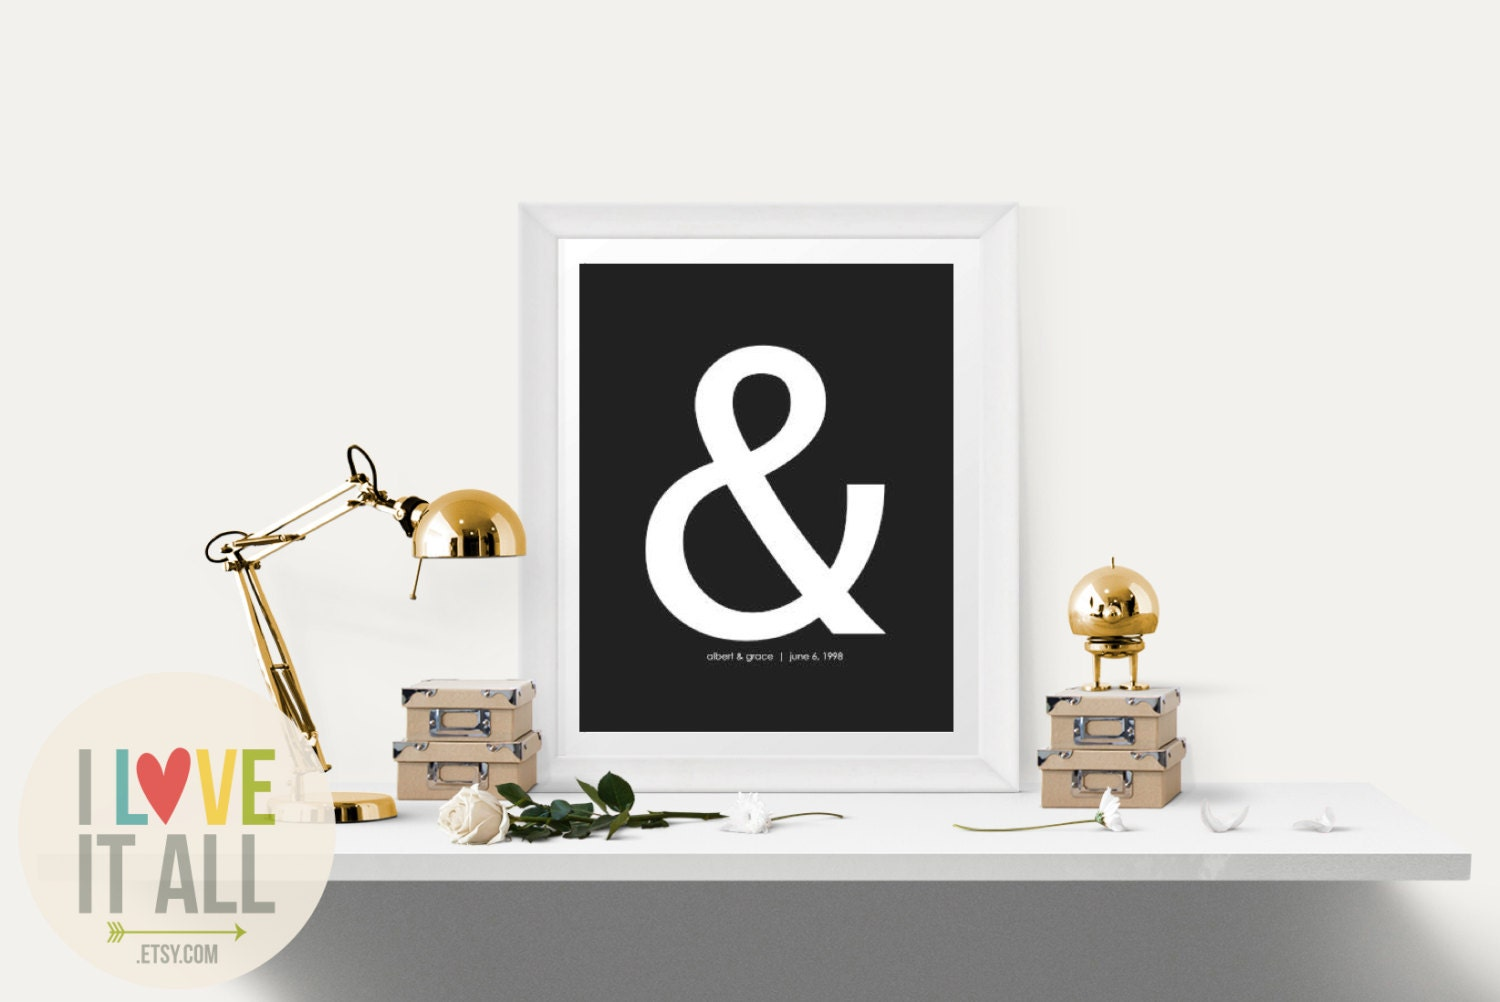 Ampersand modern bedroom decor wedding gift graphic for Ampersand decor